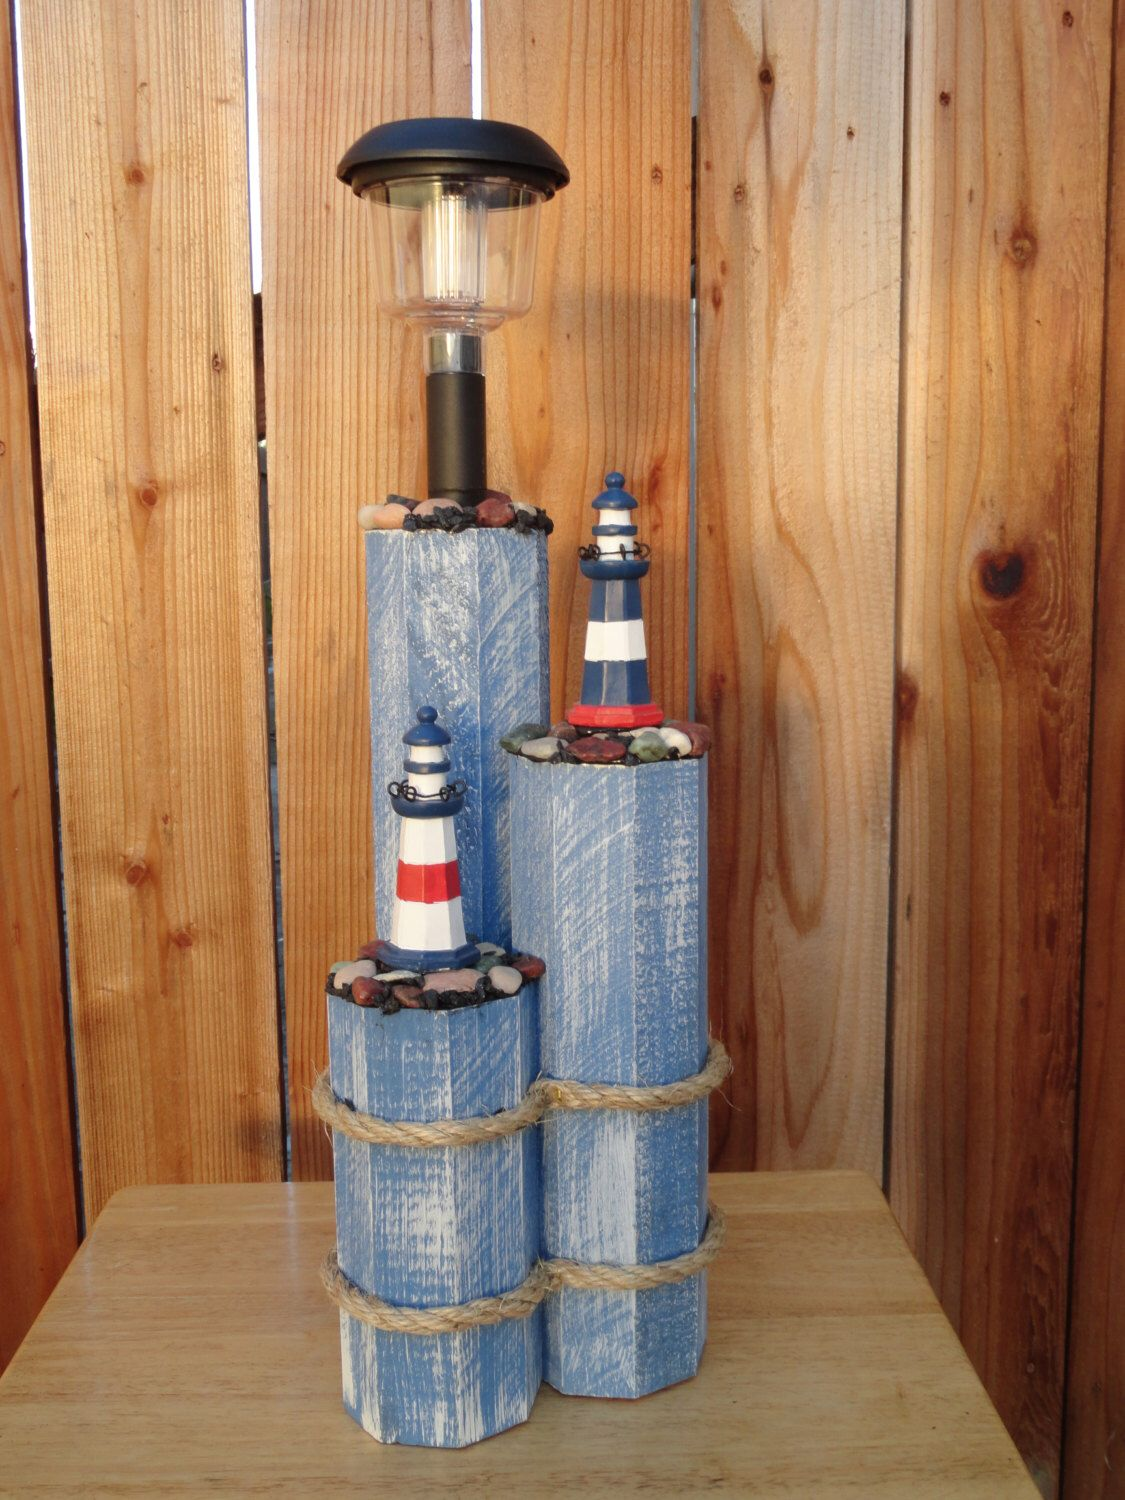 Small solar lights for crafts - Wooden Post Decor With Solar Light And Lighthouses